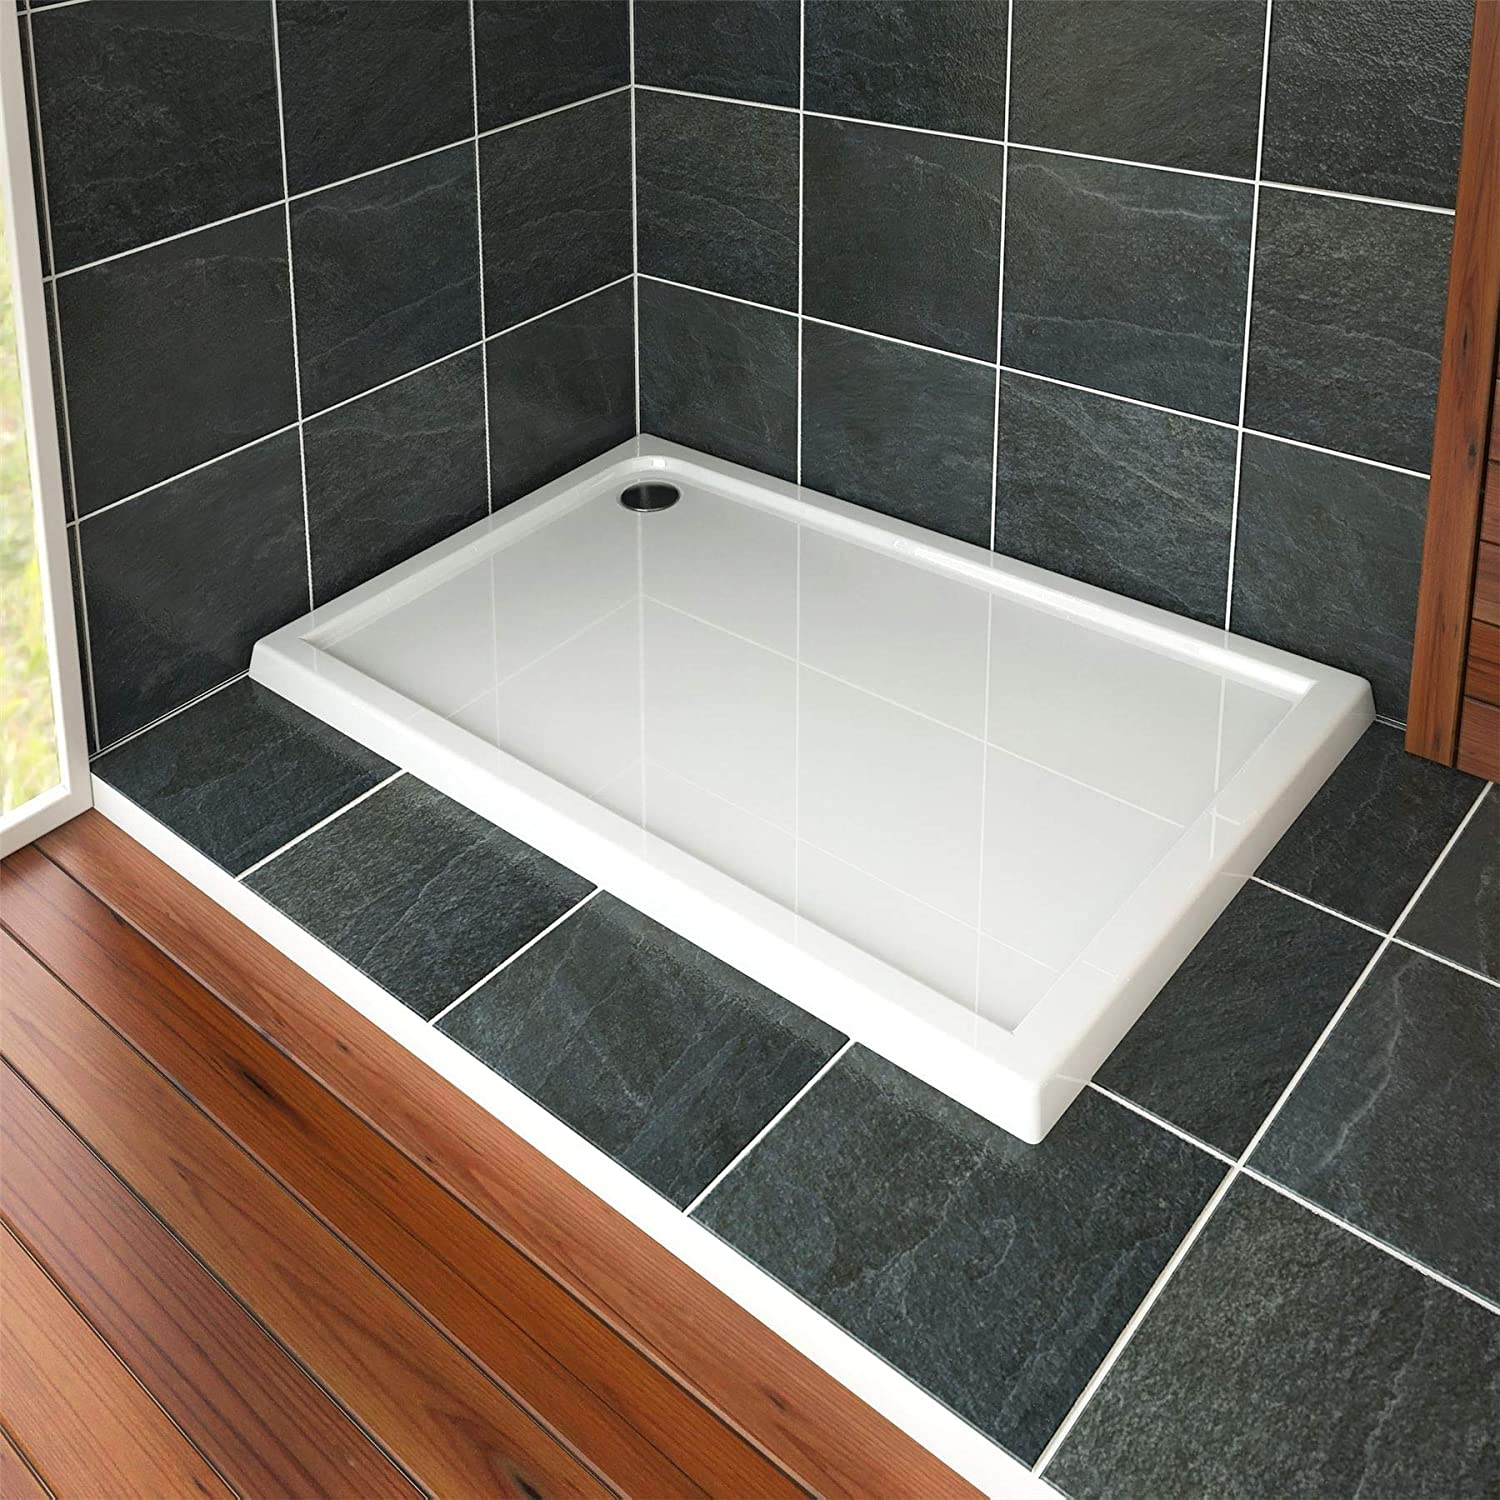 Nuie Bathroom 900 x 700mm Shower Tray Gloss White Slimline 40mm Stone Resin Rectangular Base with Free Waste Trap Kit